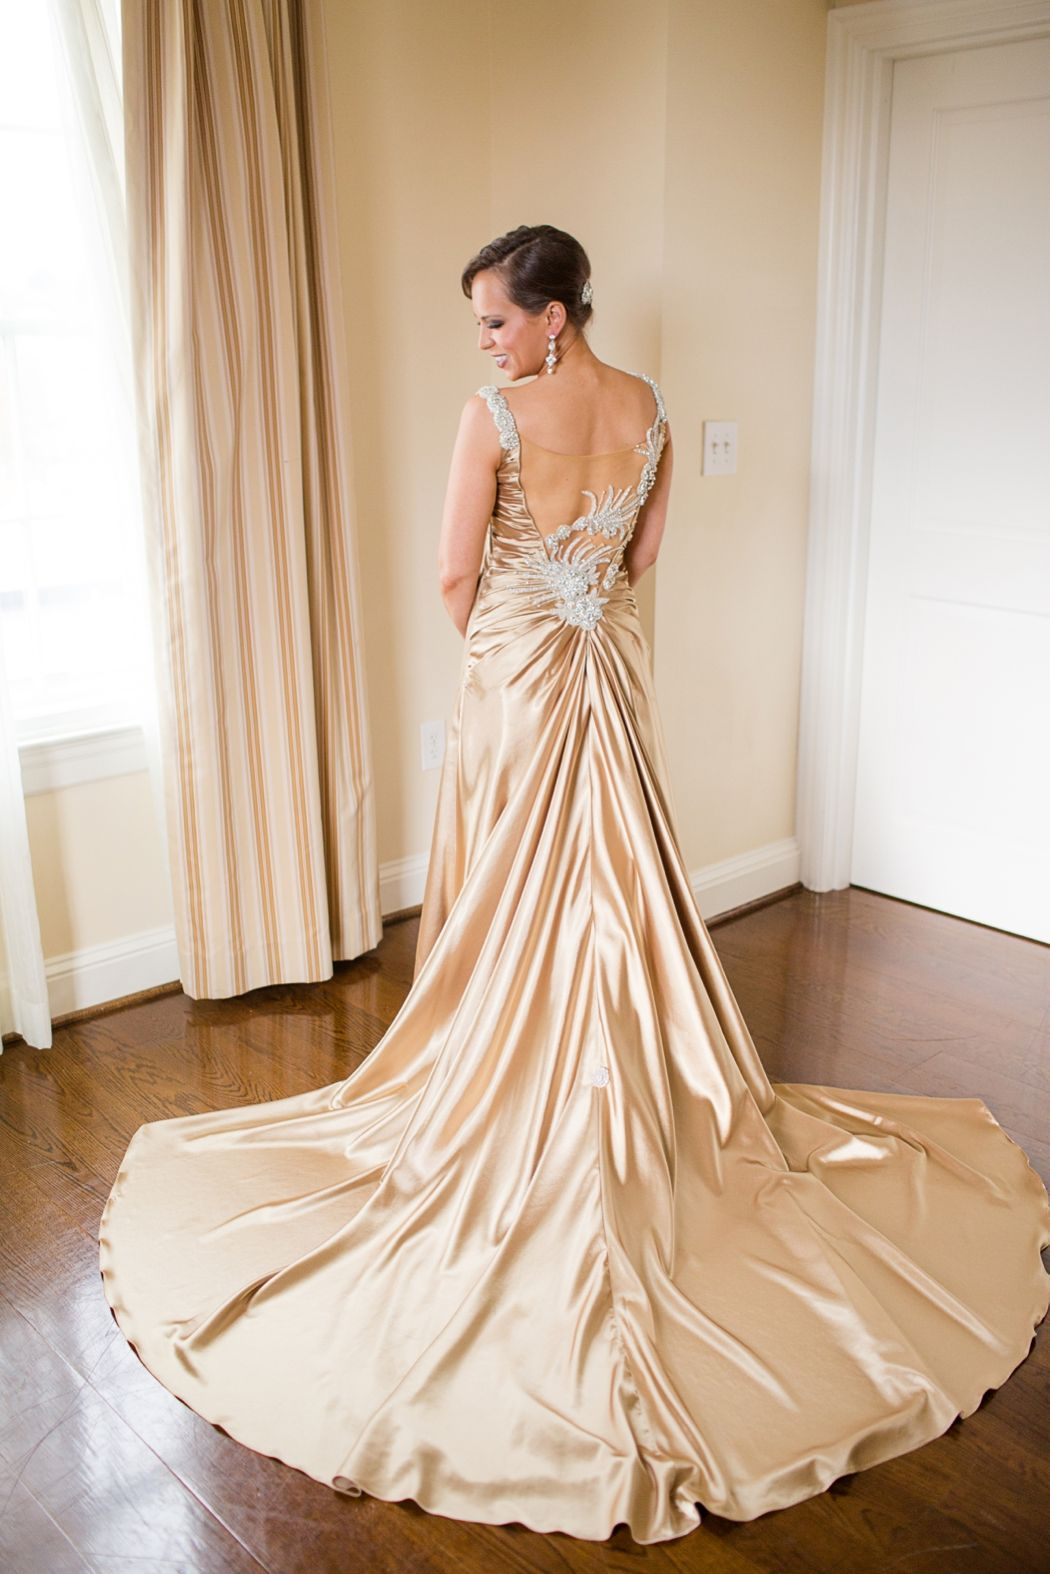 Spectacular Beautiful untraditional gold wedding dress Photo by Katelyn James Photography